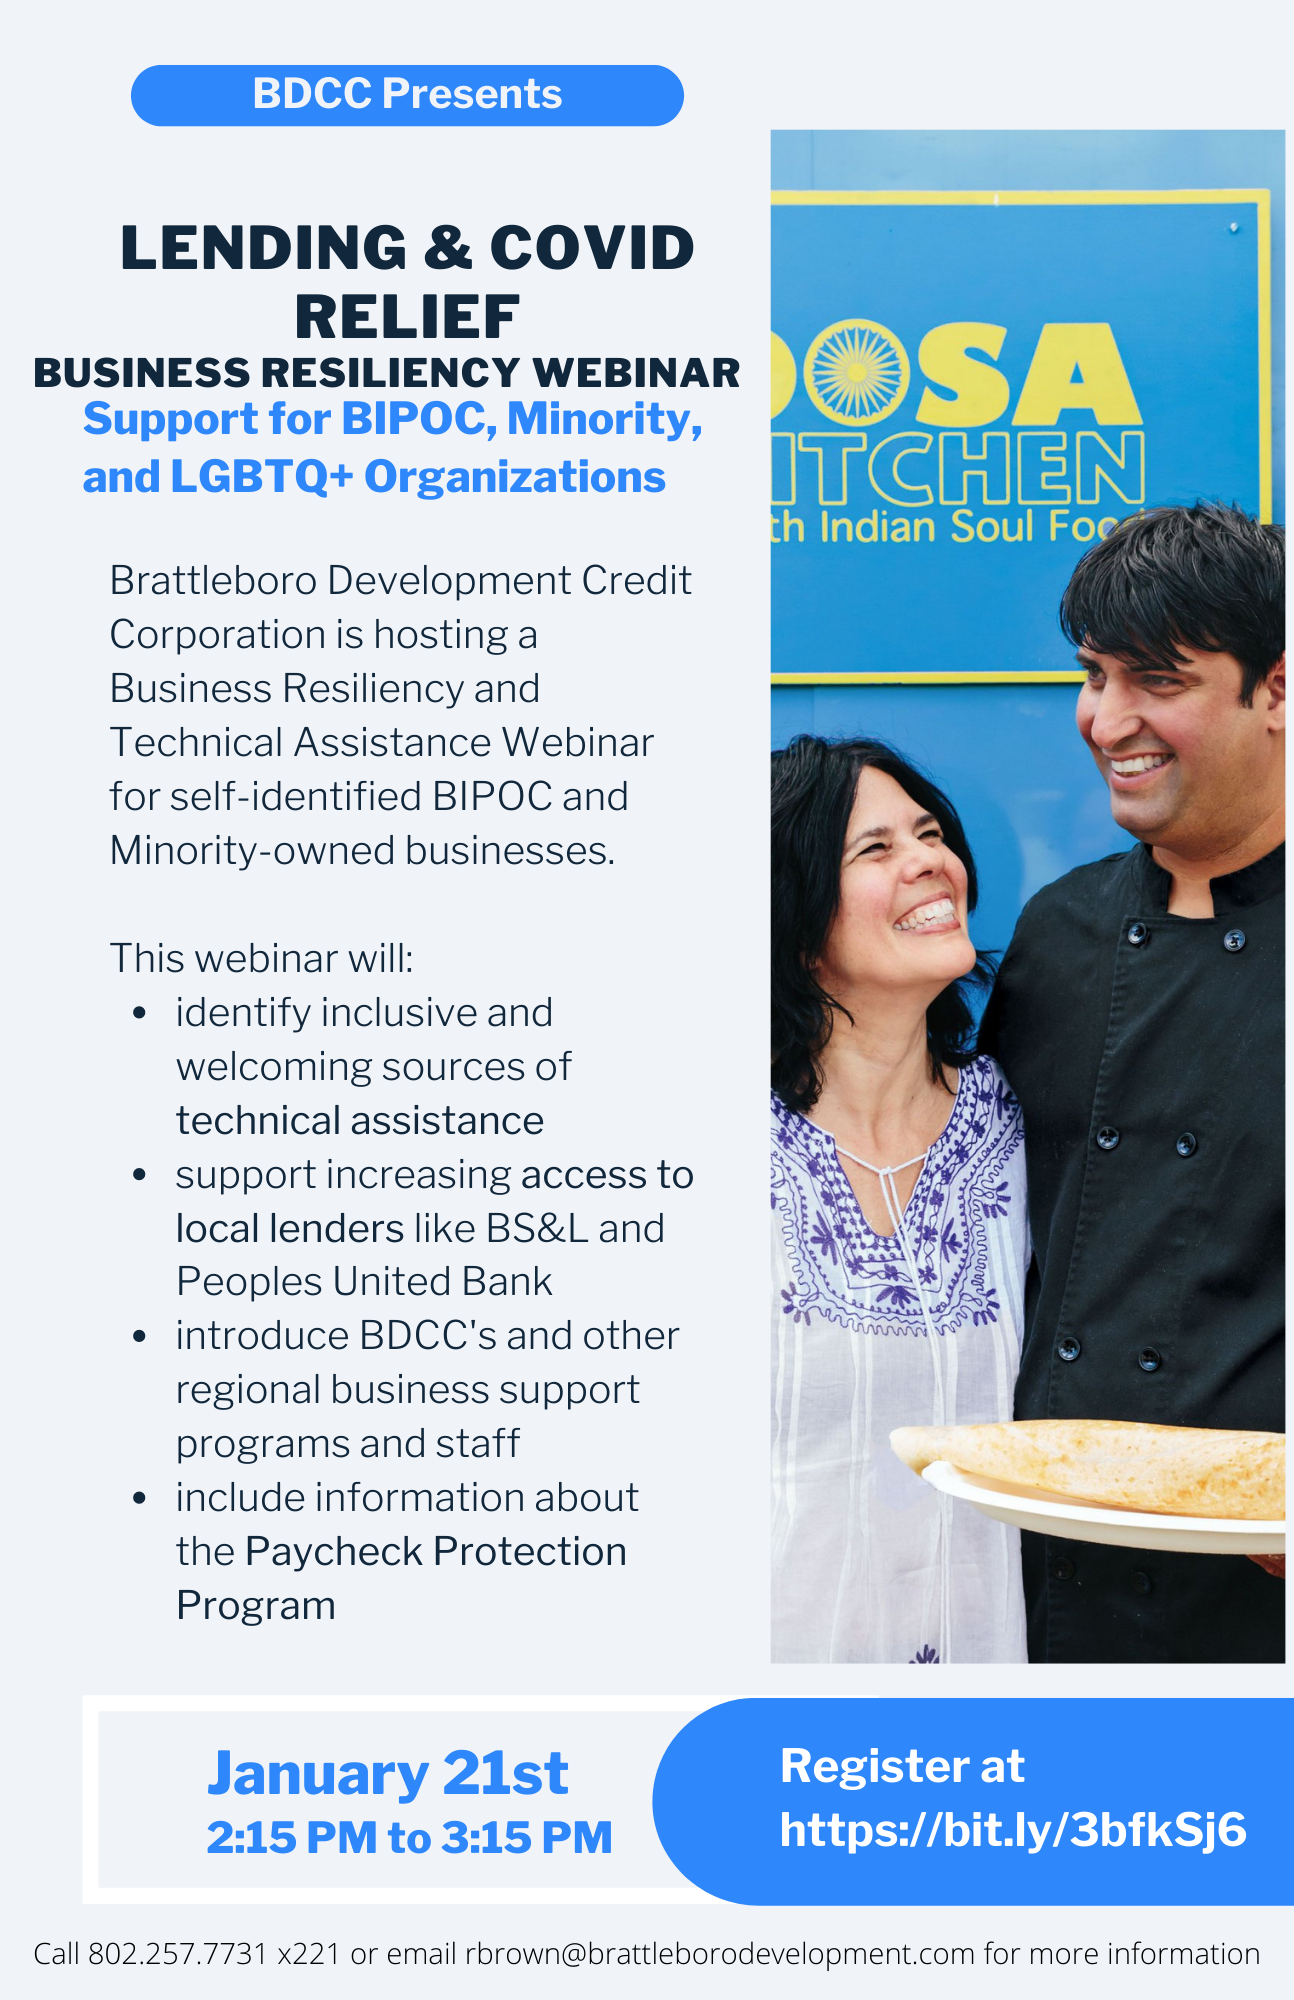 This webinar will: identify inclusive and welcoming sources of technical assistance support increasing access to local lenders like BS&L and Peoples United Bank introduce BDCC's and other regional business support programs and staff include information about the Paycheck Protection Program